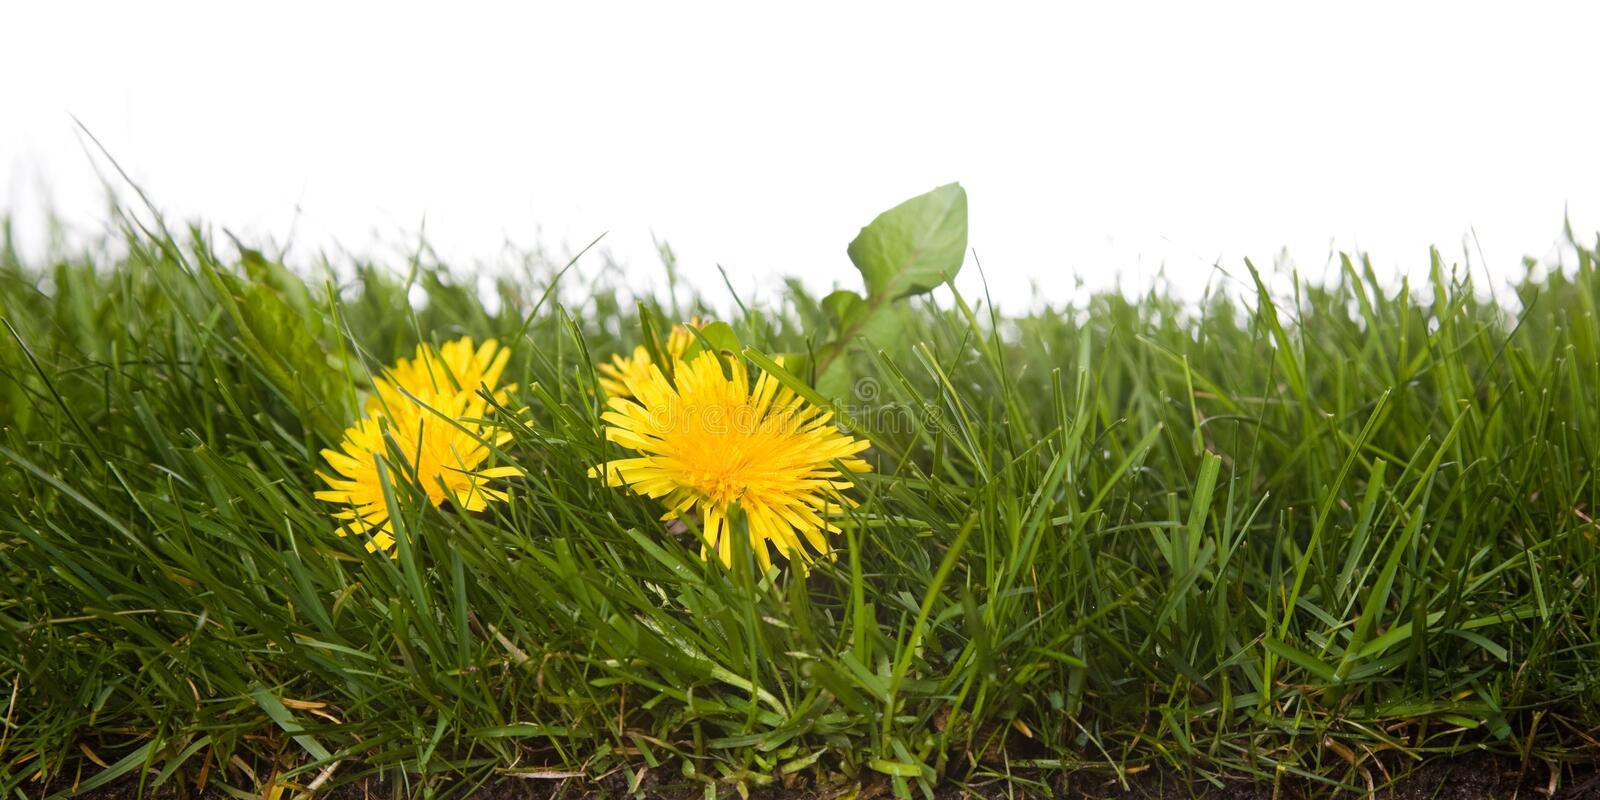 Grass with dandelion royalty free stock image